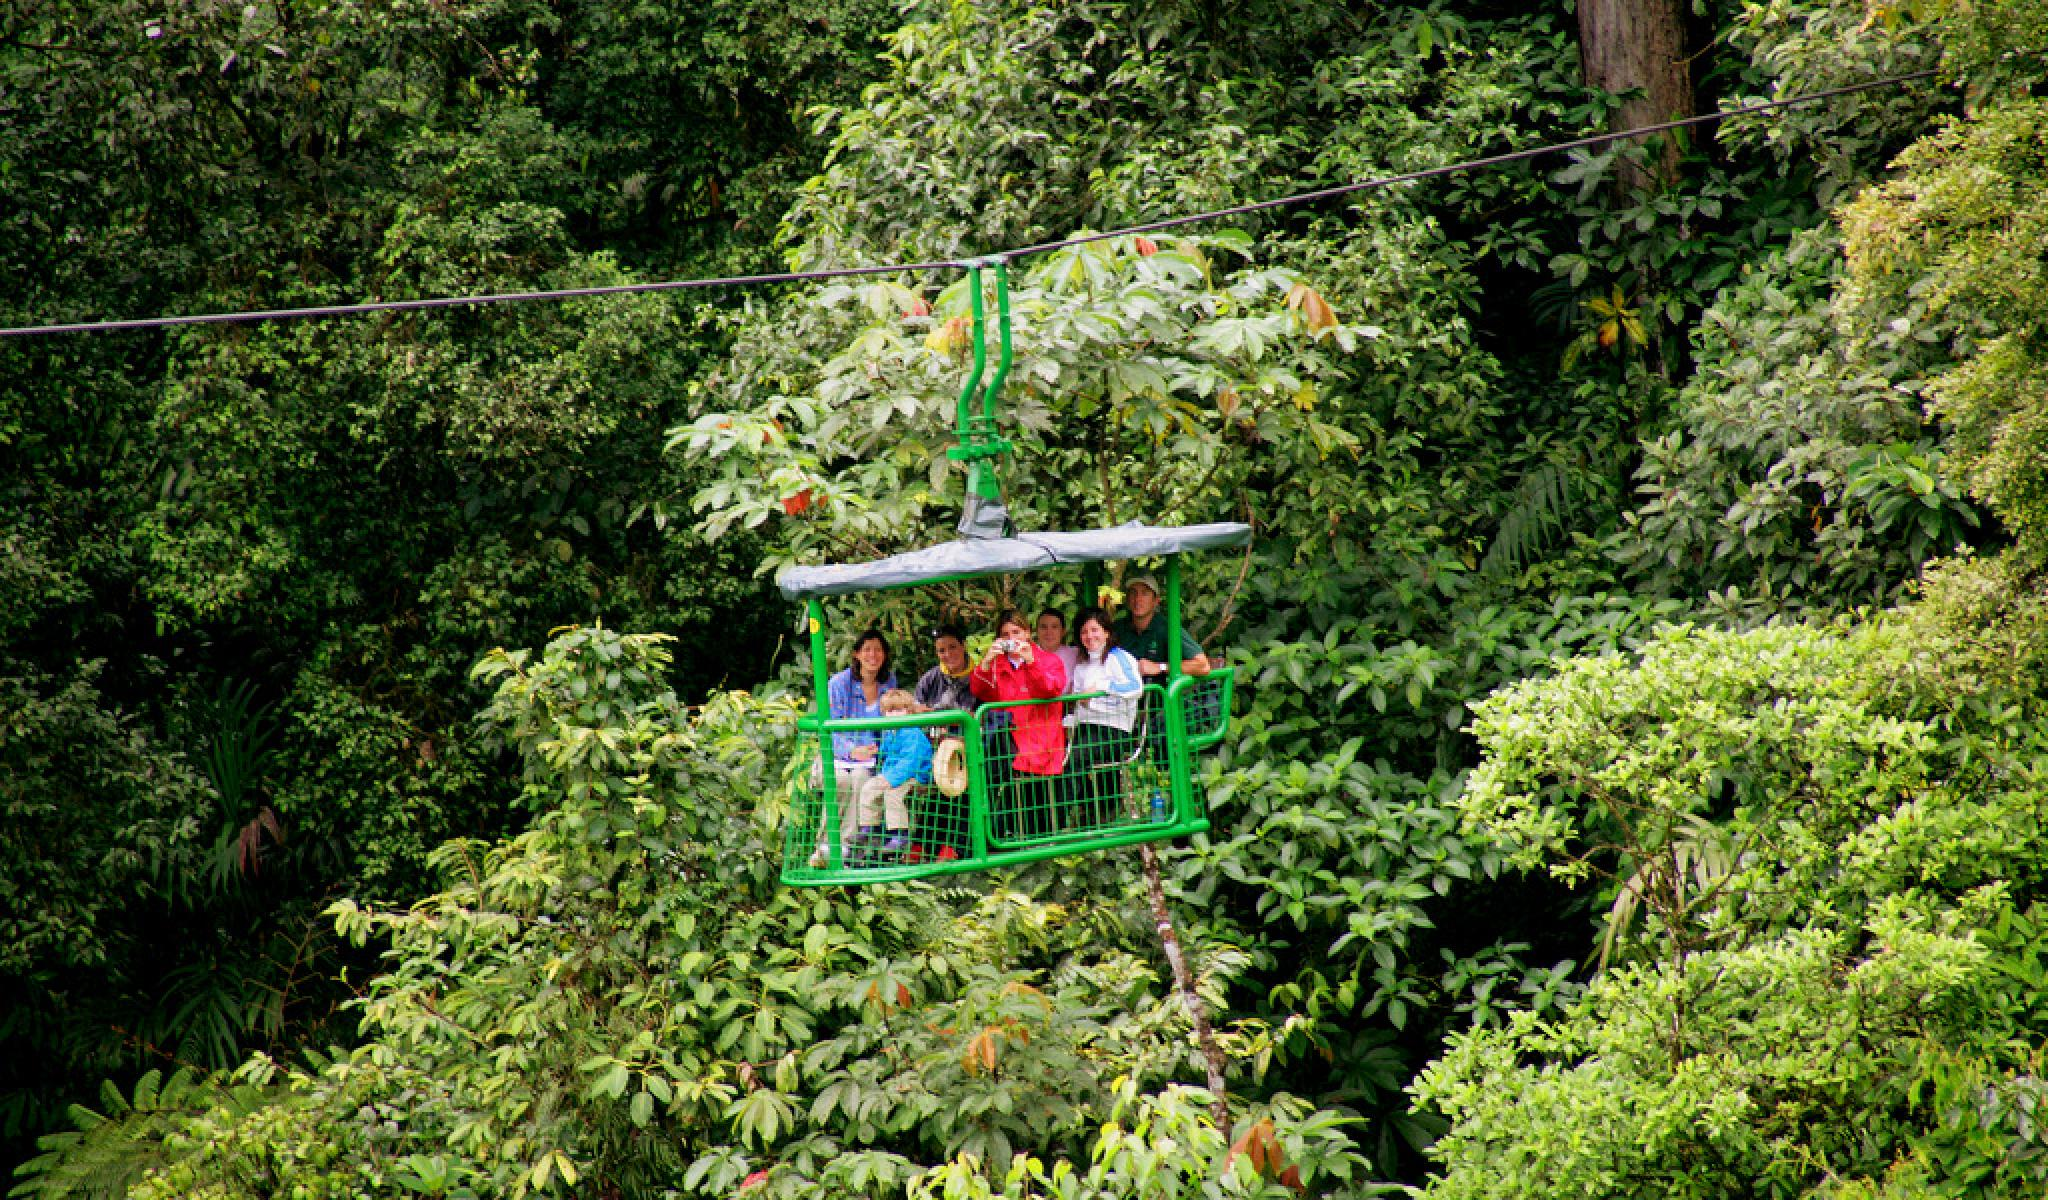 Rainforest Tram Alantic, Costa Rica